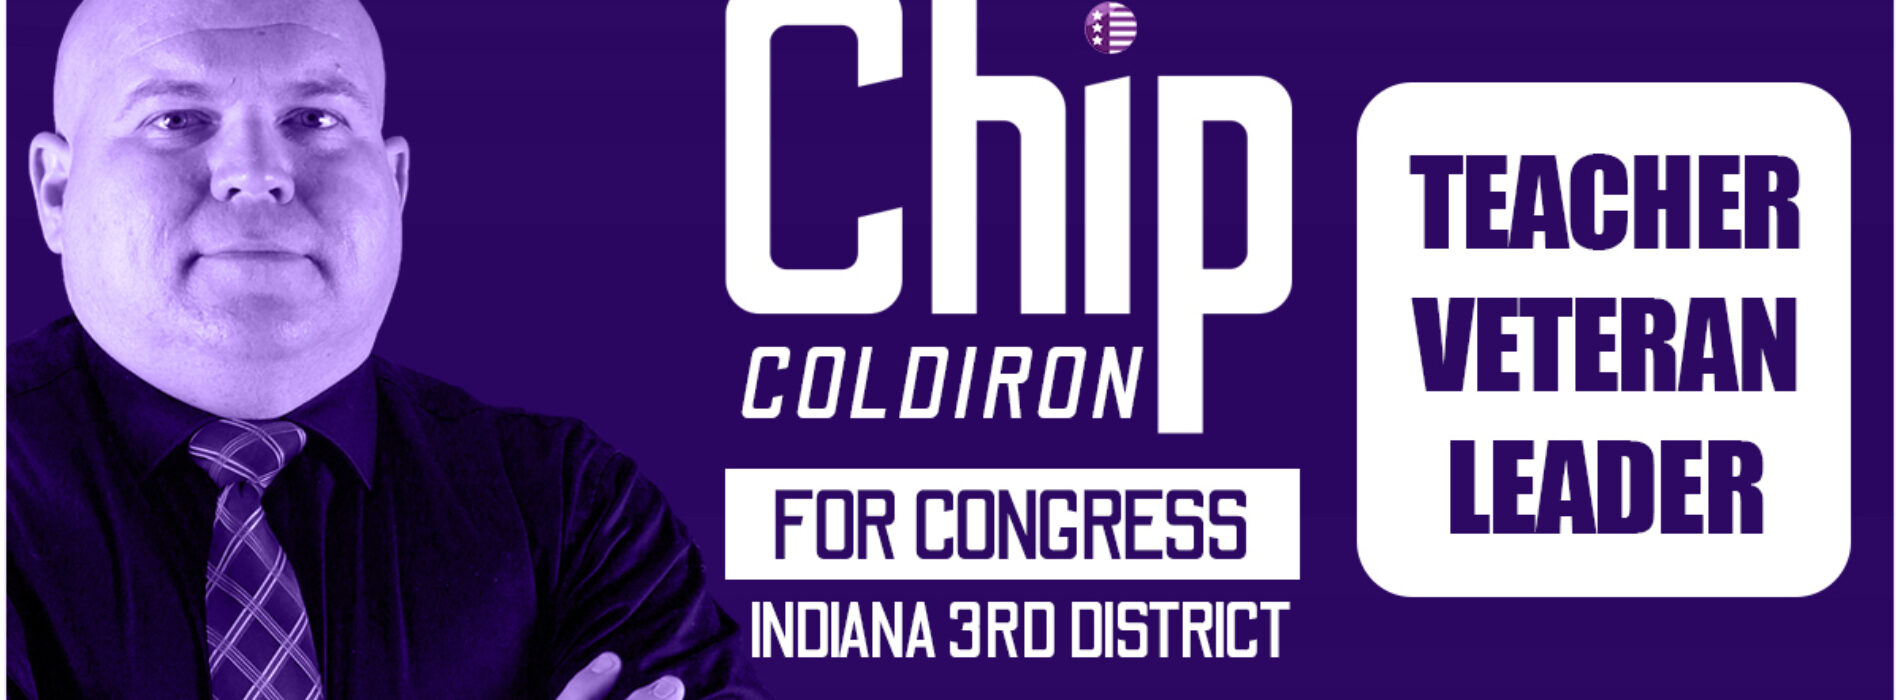 Democrat Chip Coldiron launches first radio ad in Indiana's 3rd Congressional District